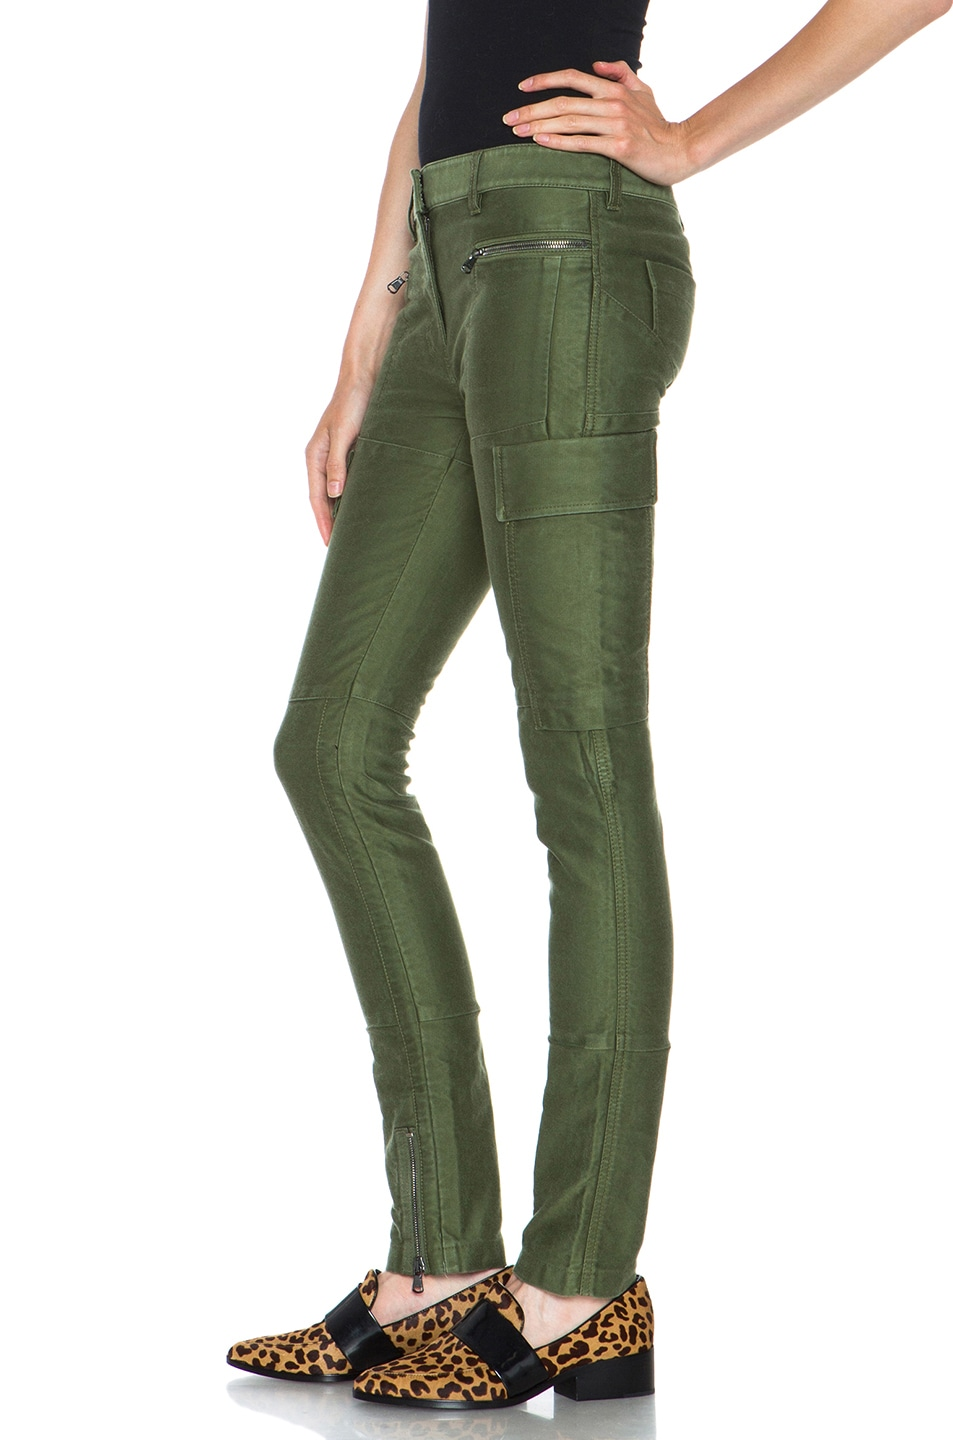 Image 2 of 3.1 phillip lim Skinny Cargo Cotton Pant in Army Green